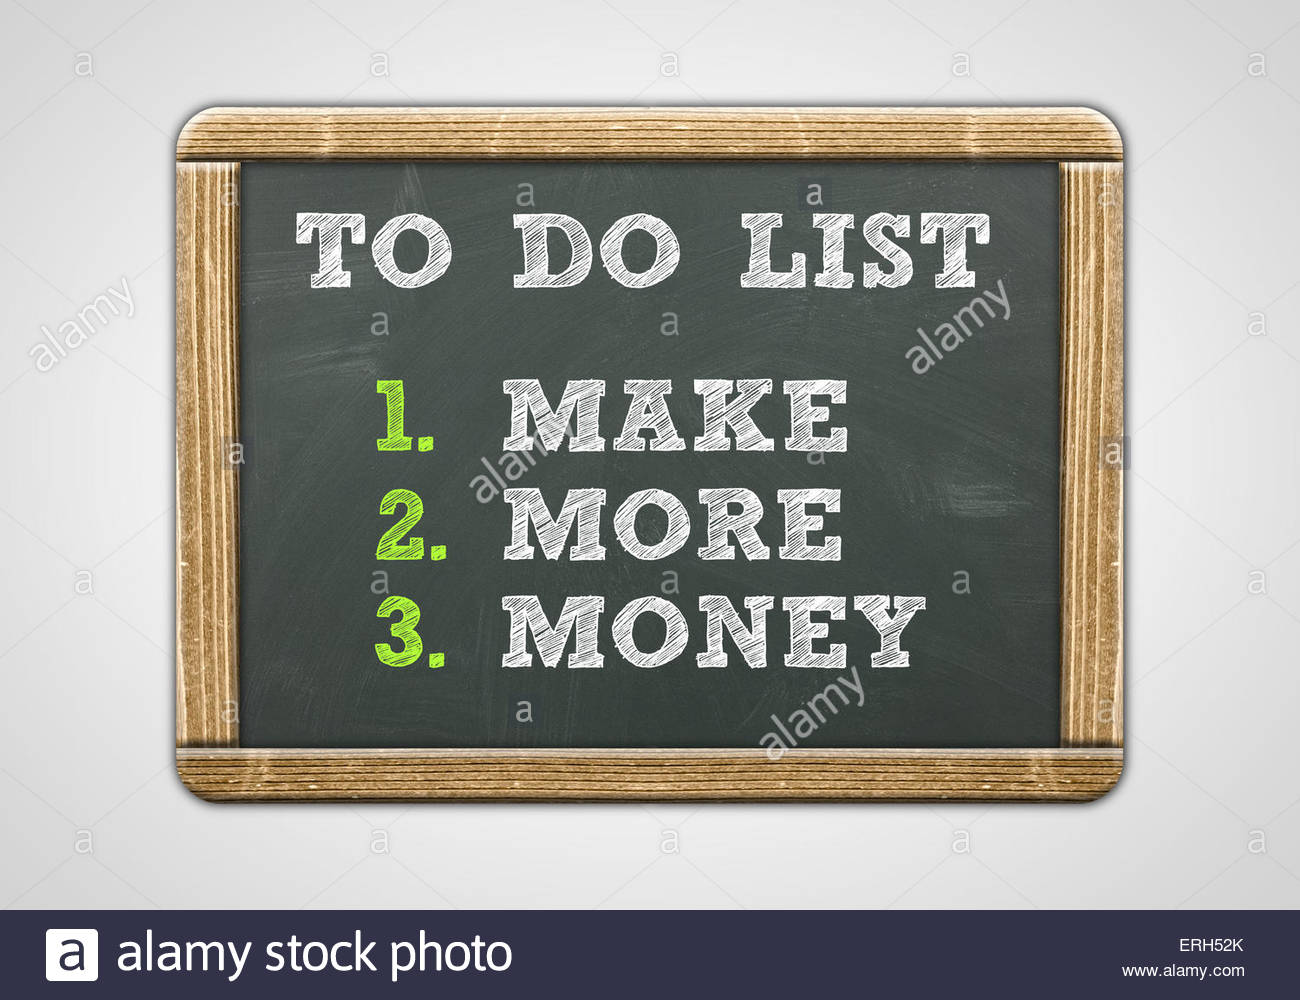 Make More Money - Stock Image